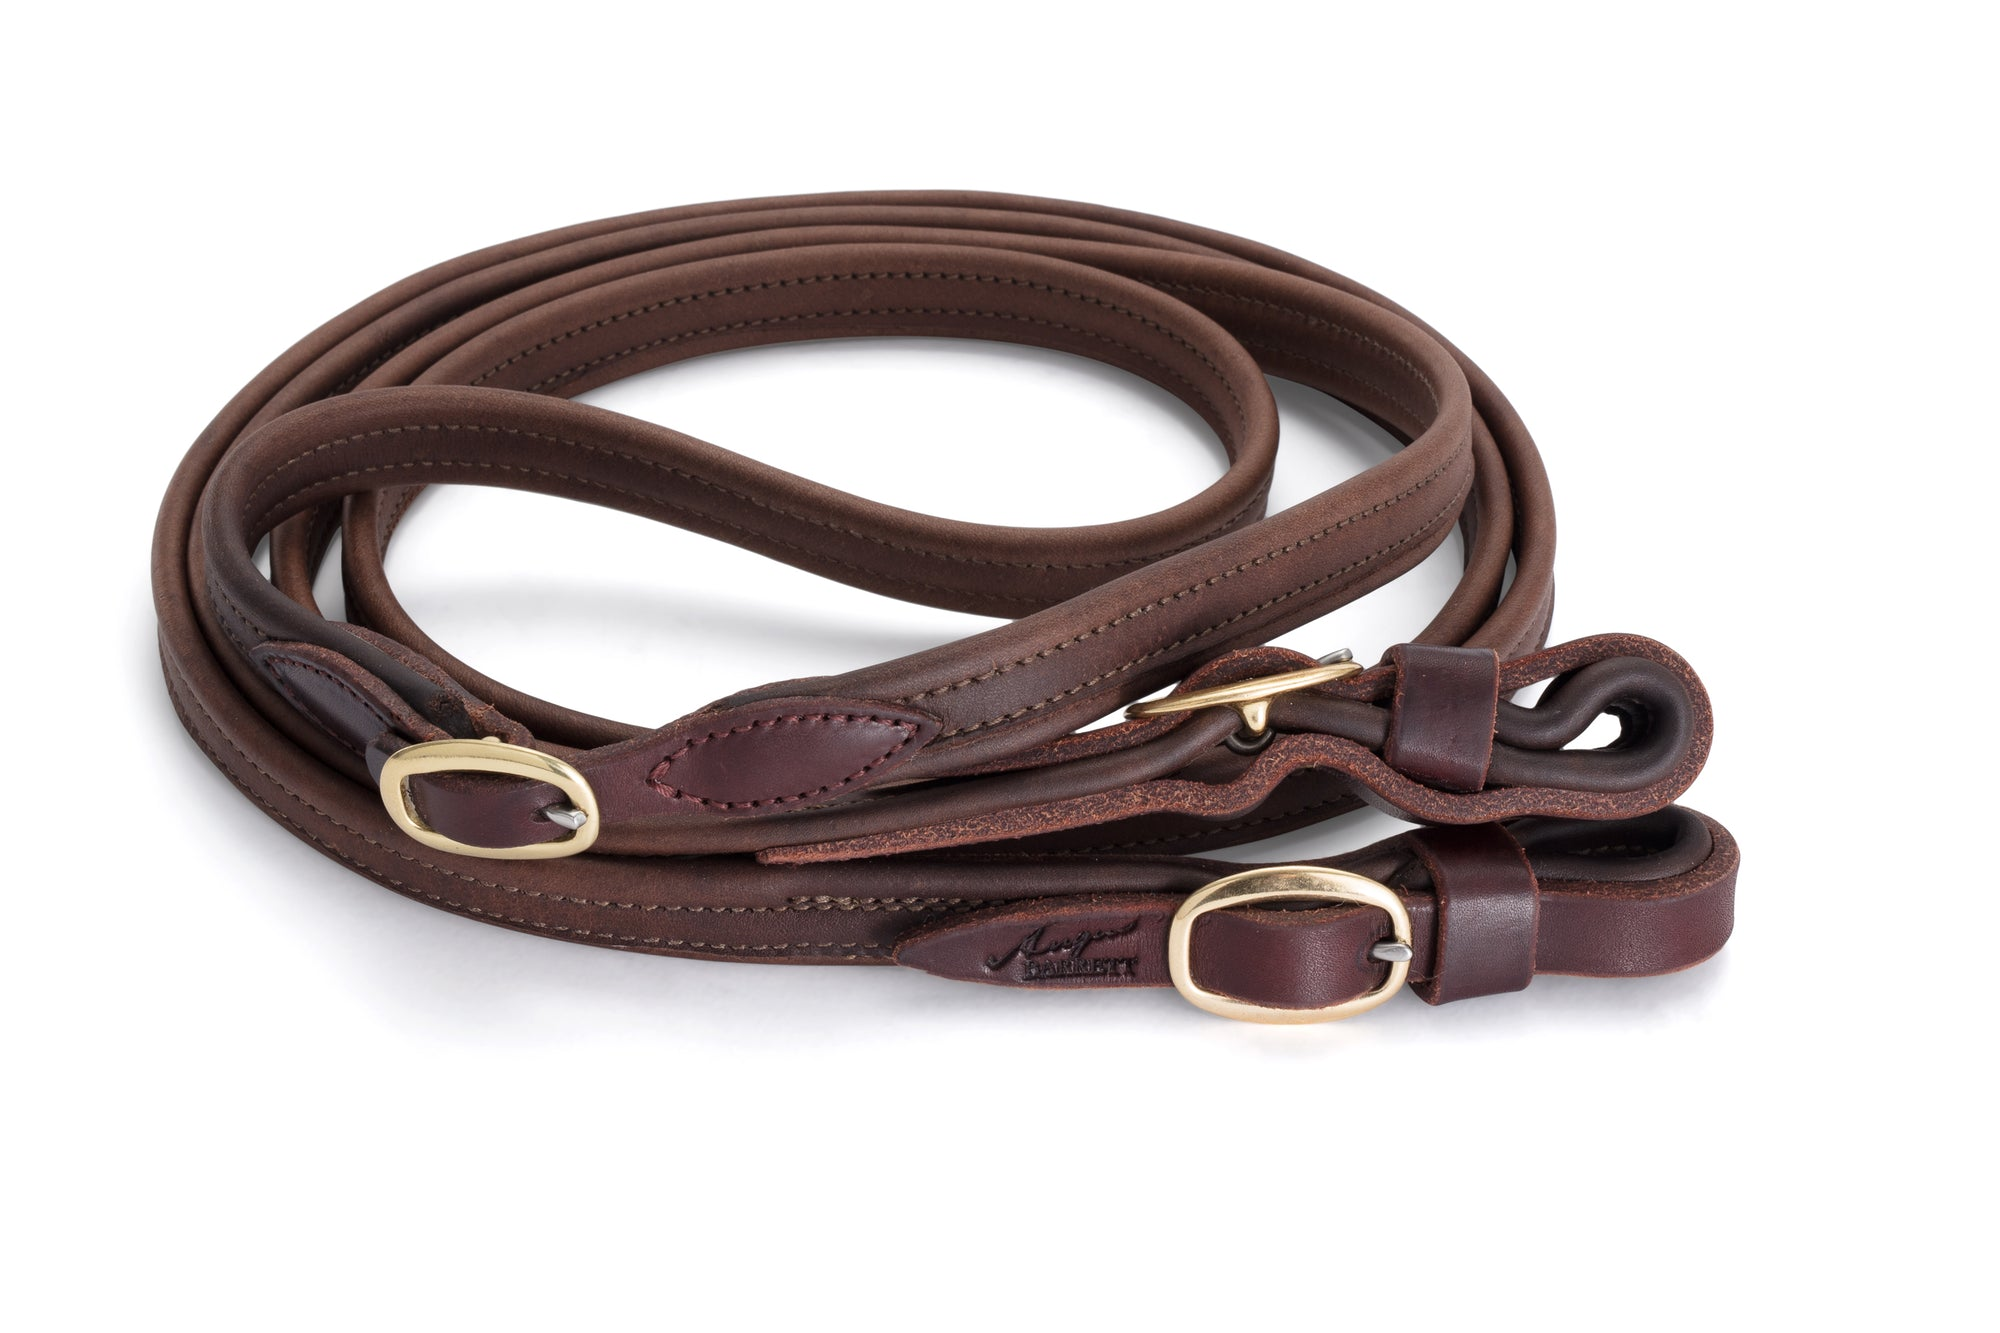 Joined French Leather Reins - Brown